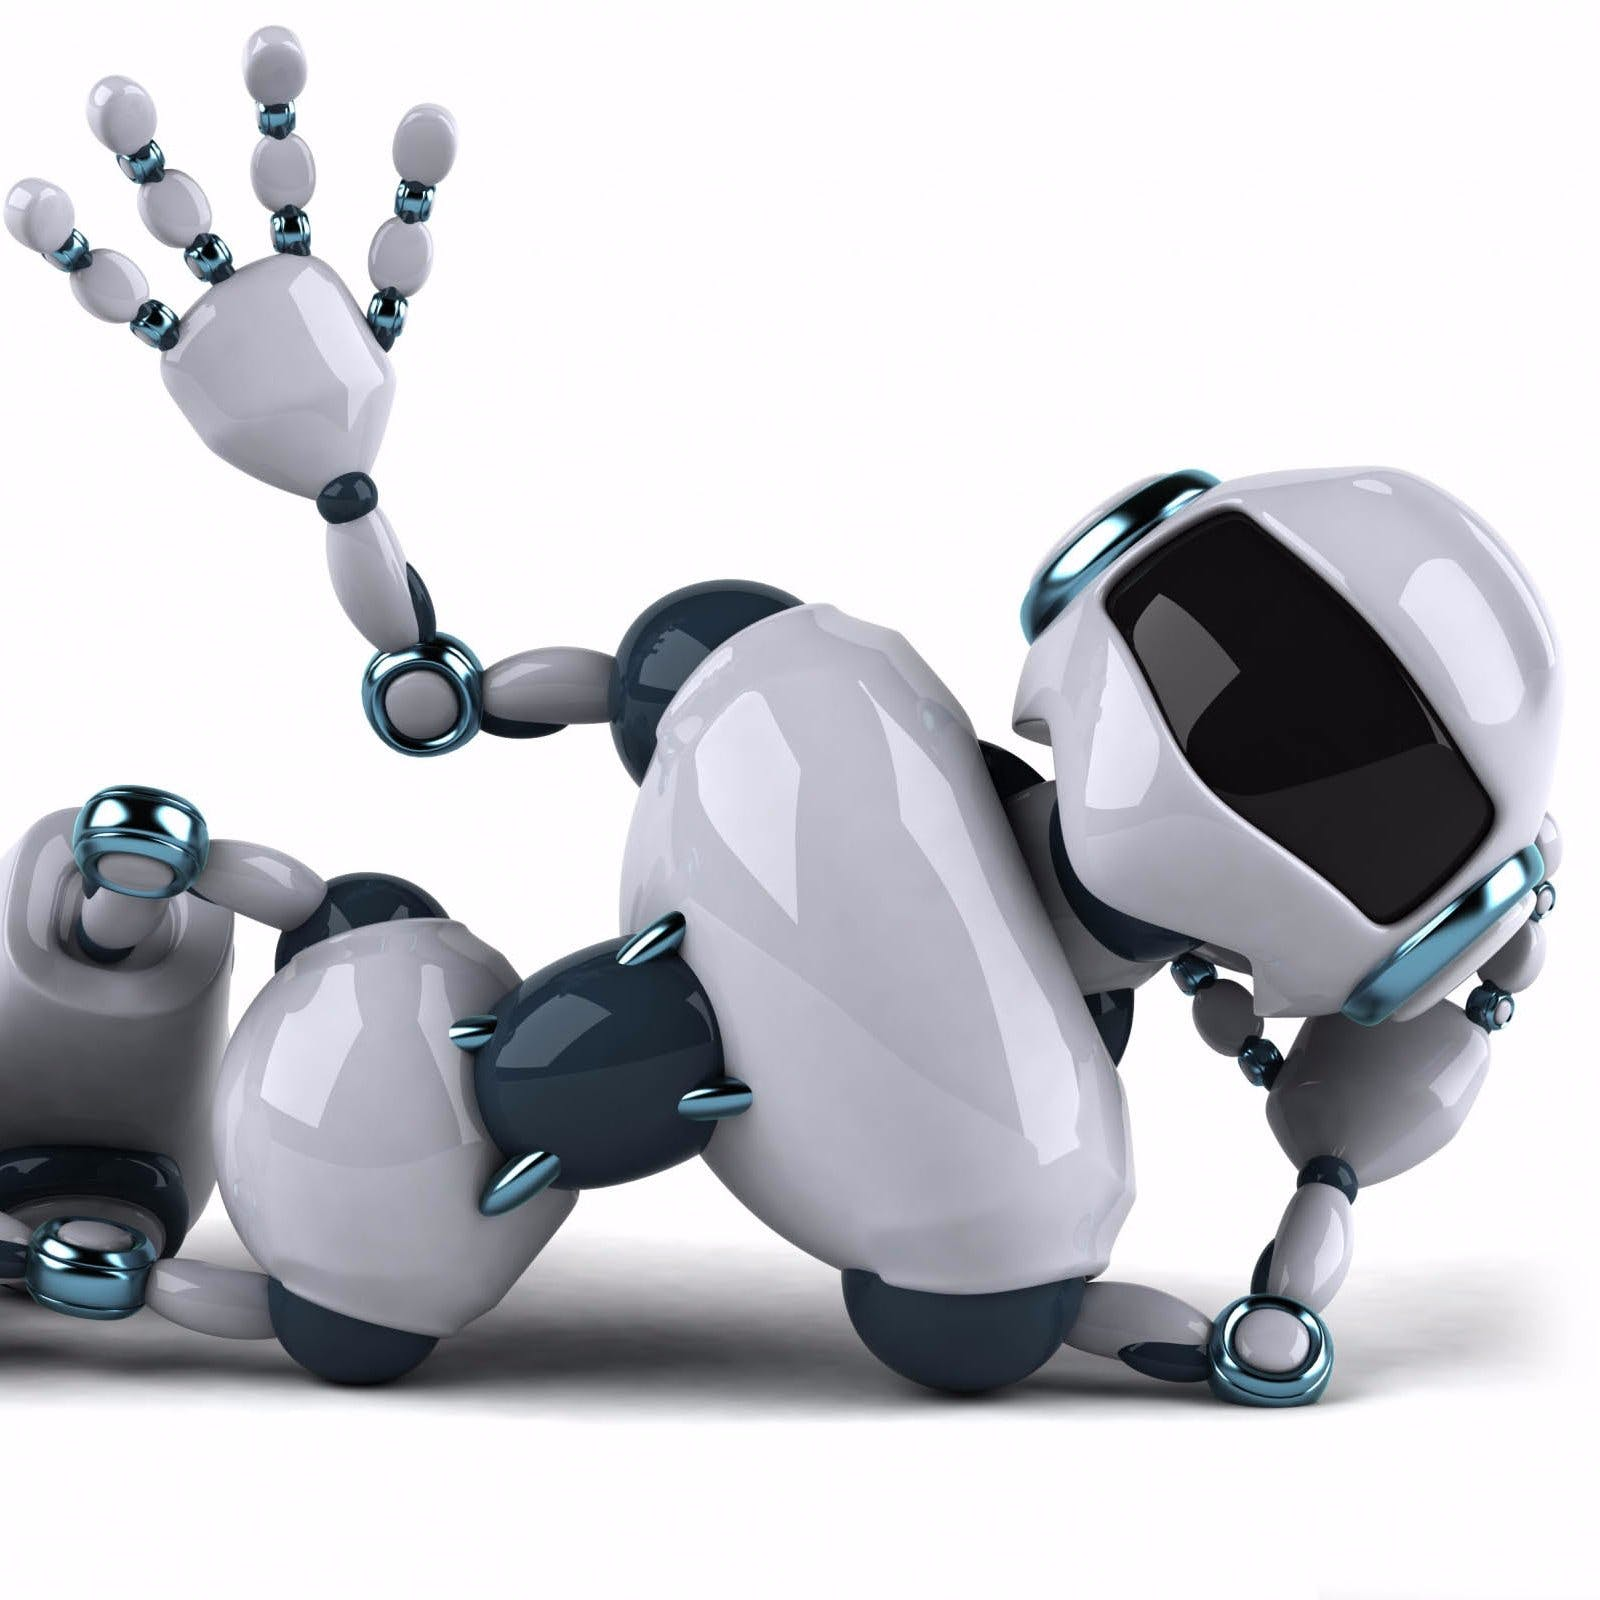 Robots the possibilities of artificial intelligence fdu2b56r1x